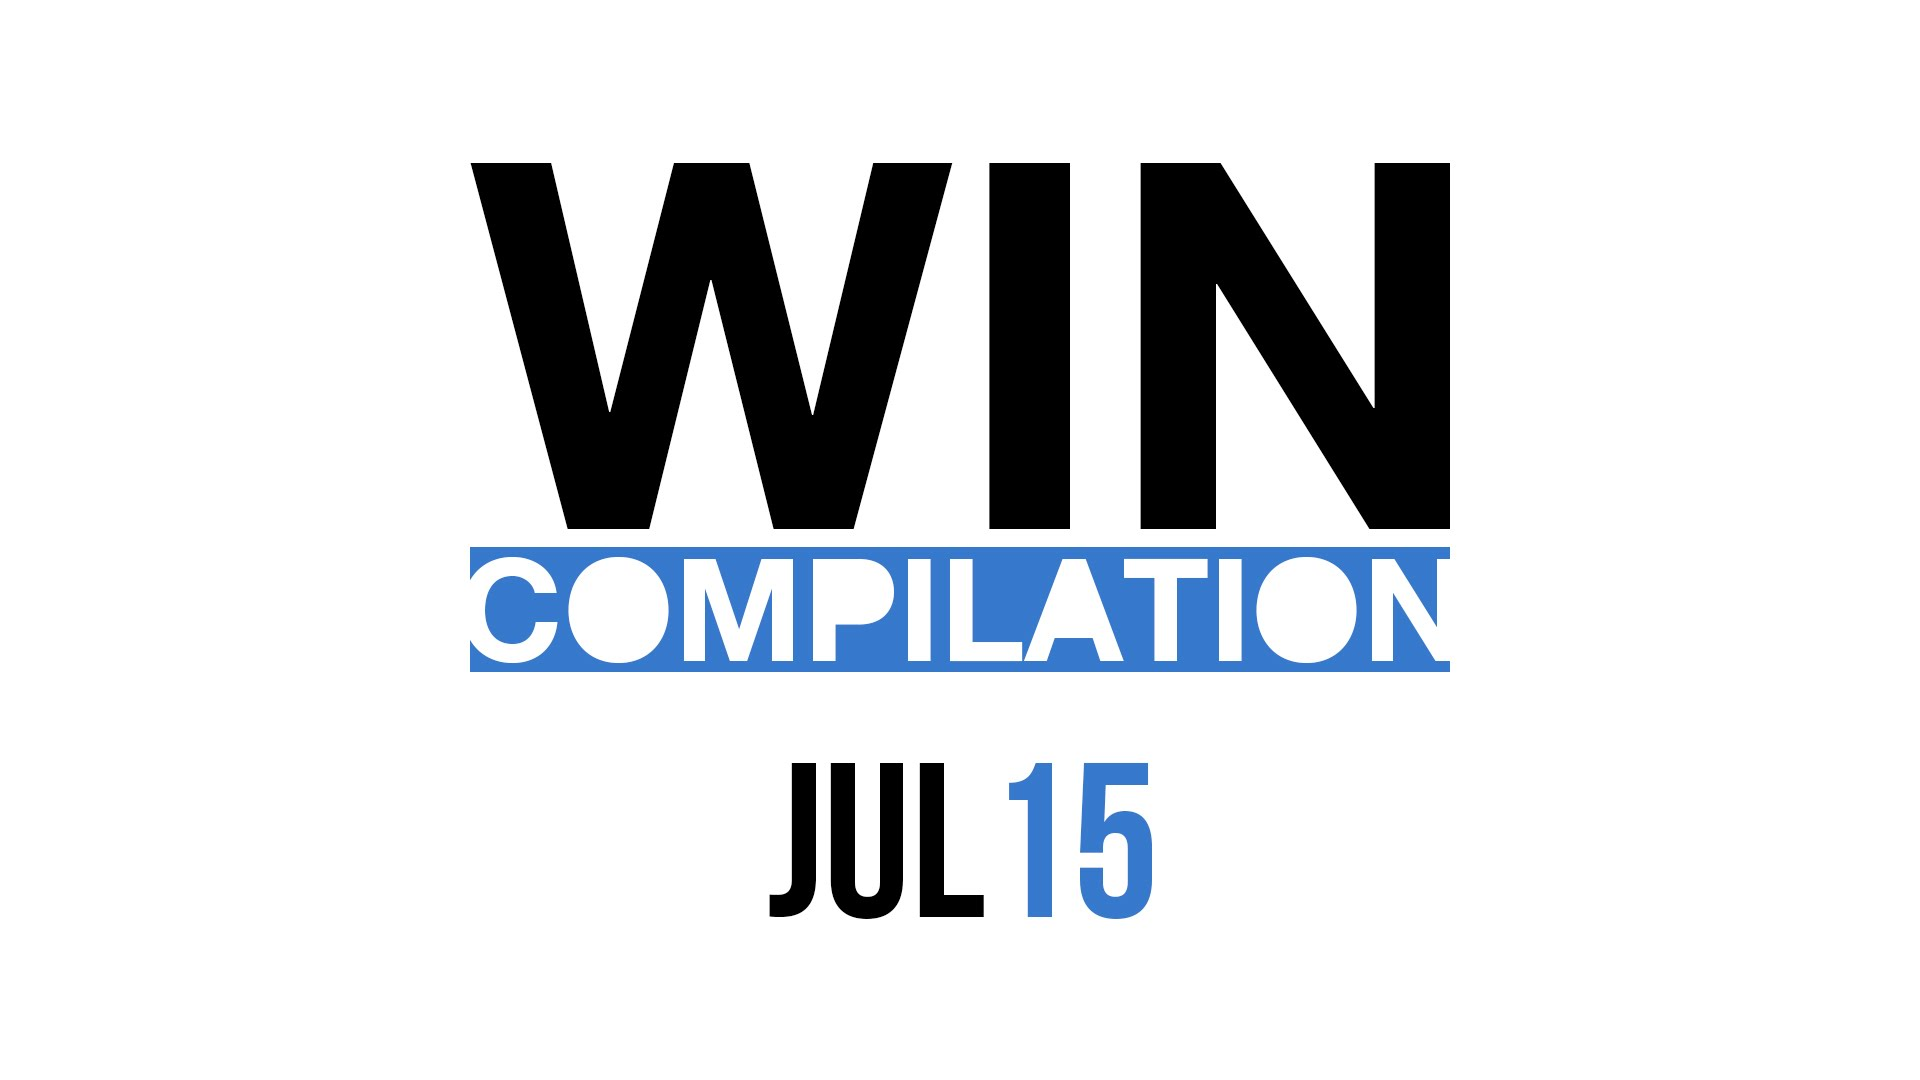 WIN Compilation July 2015